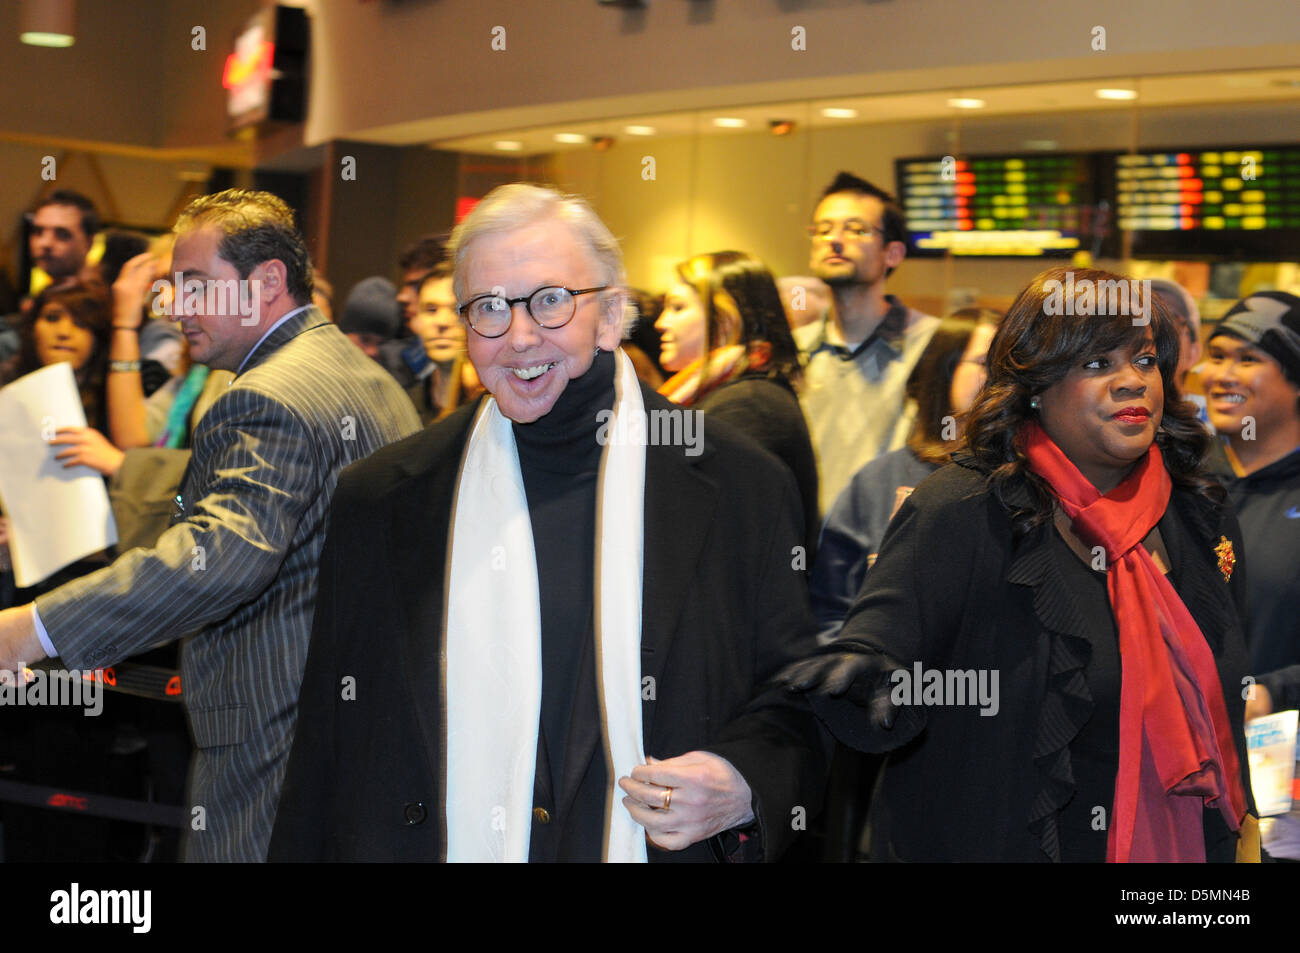 Chicago, USA. 6th January, 2011. Roger Ebert appears with his wife Chaz Hammelsmith at the premier of The Dillemma - Stock Image